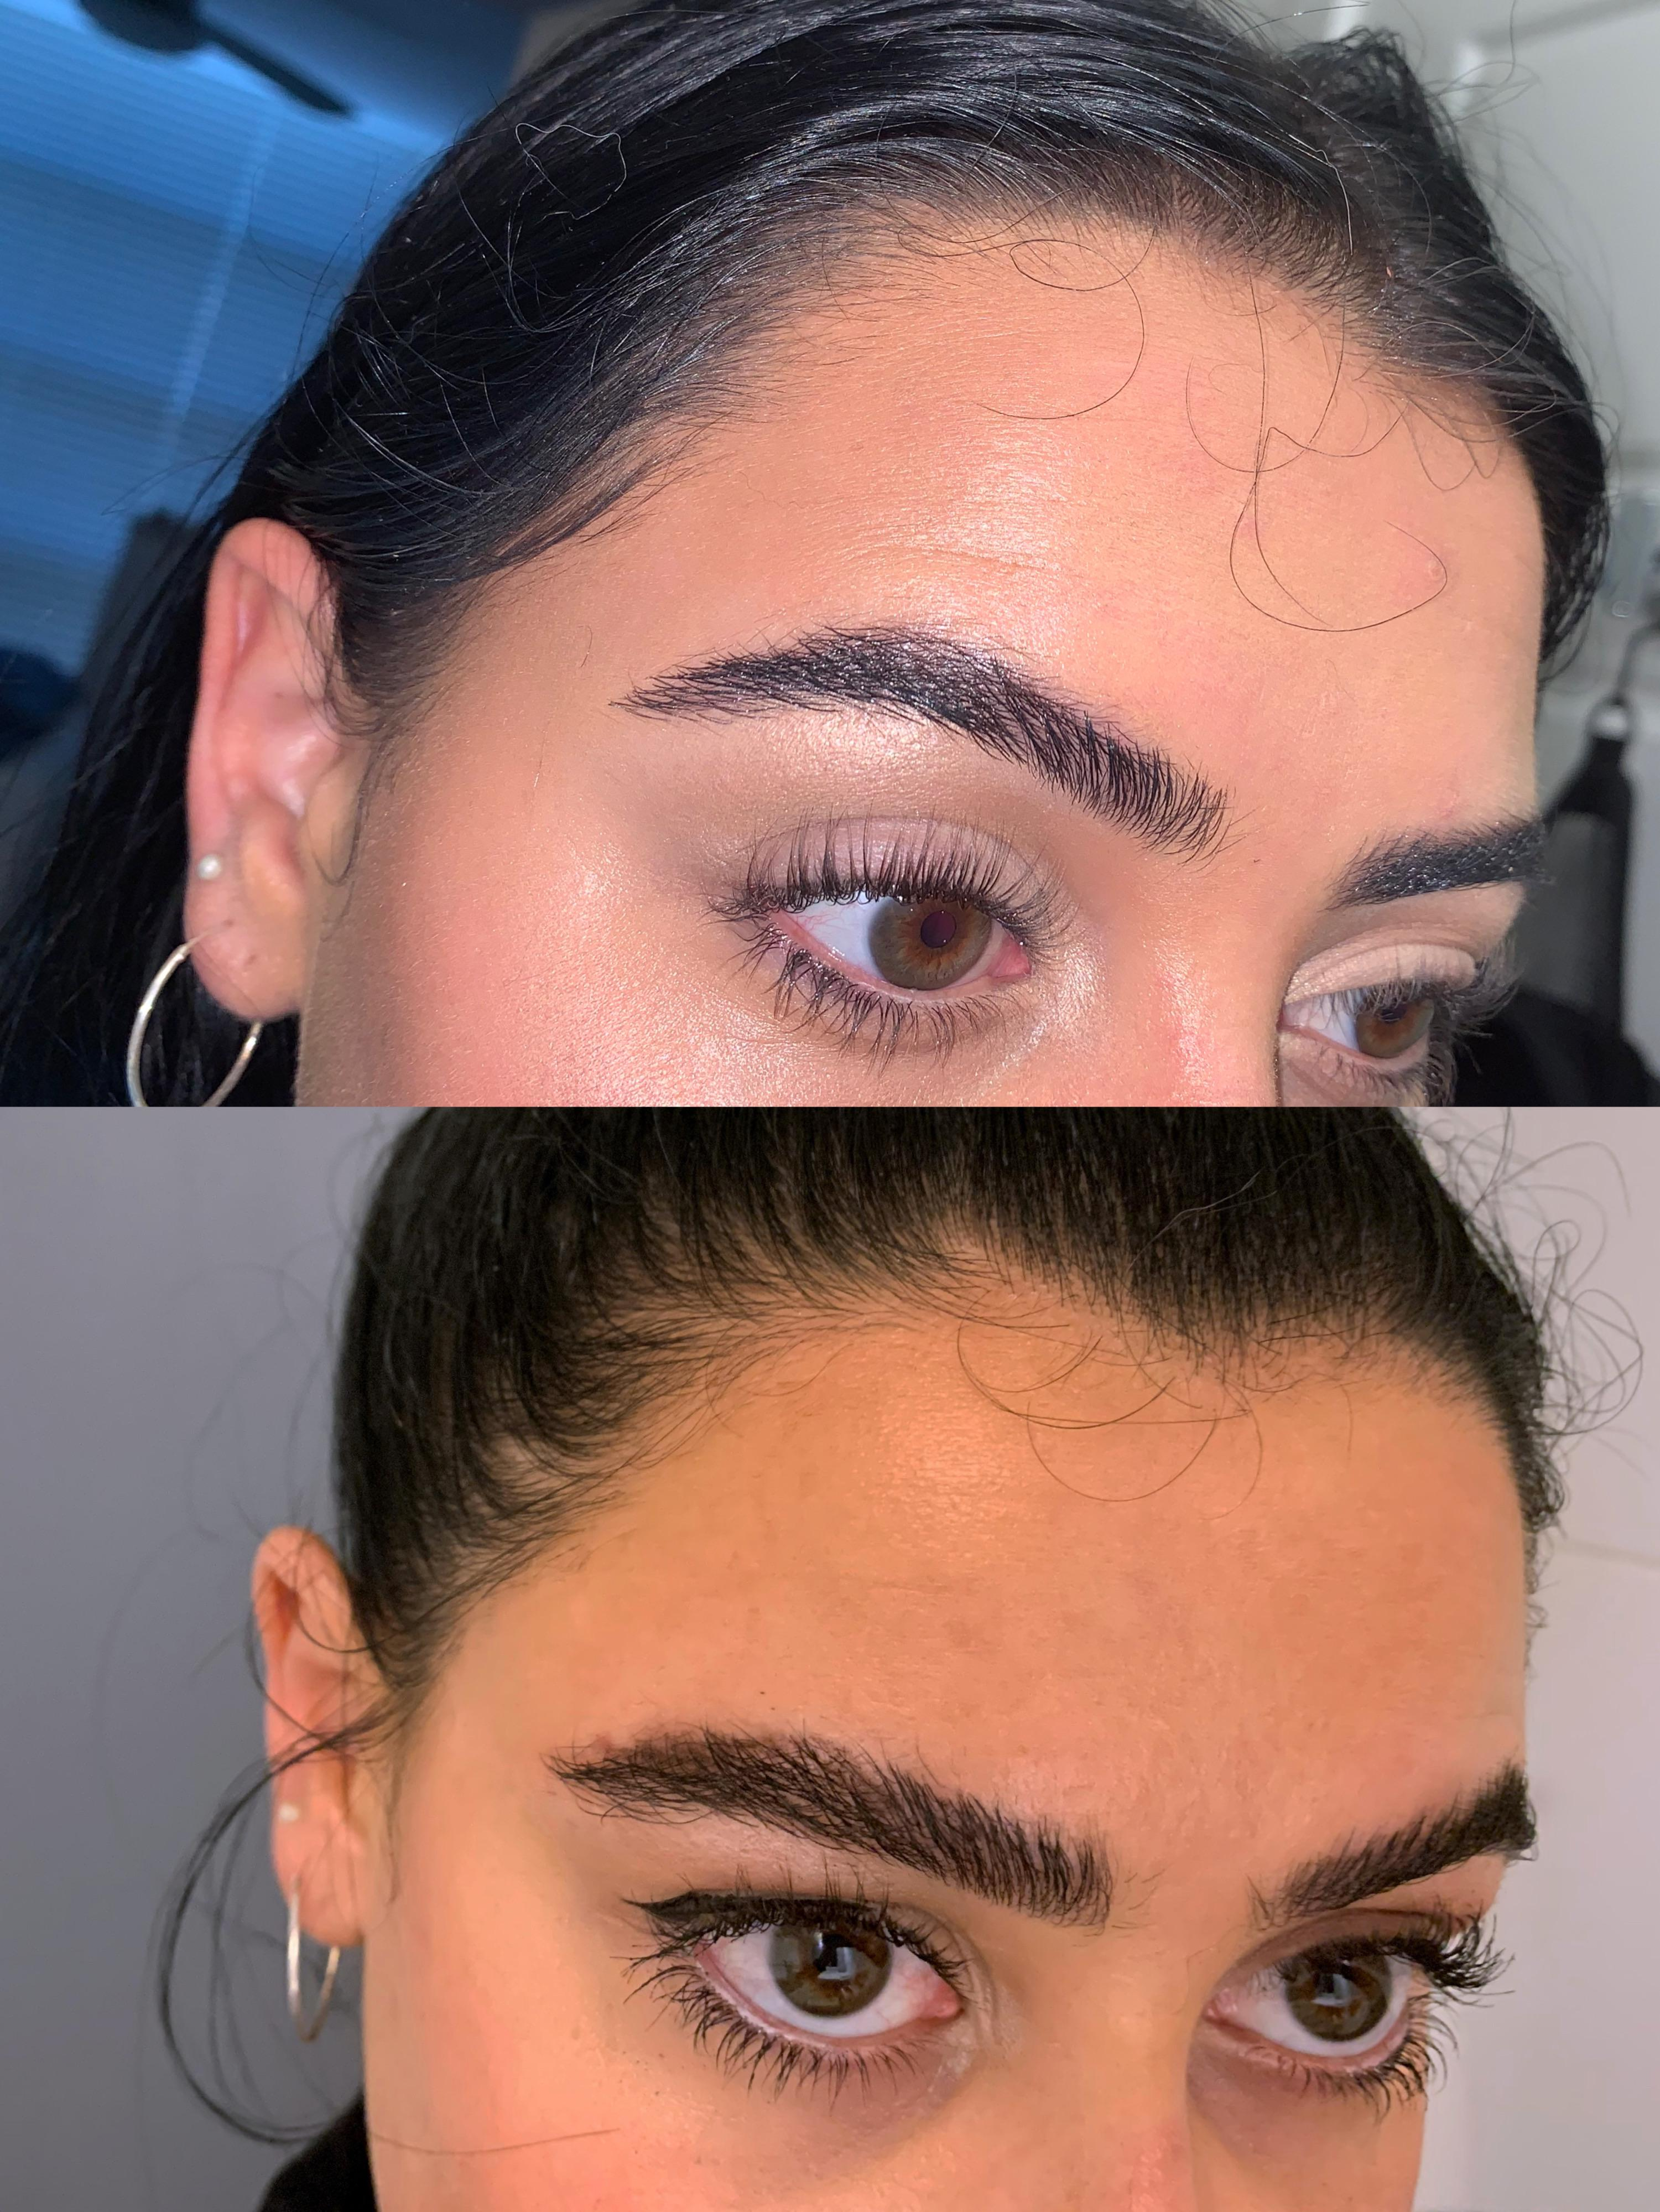 I Tried To Laminate My Eyebrows At Home So That You Don T Have To Read More In The Comments Eyebrows